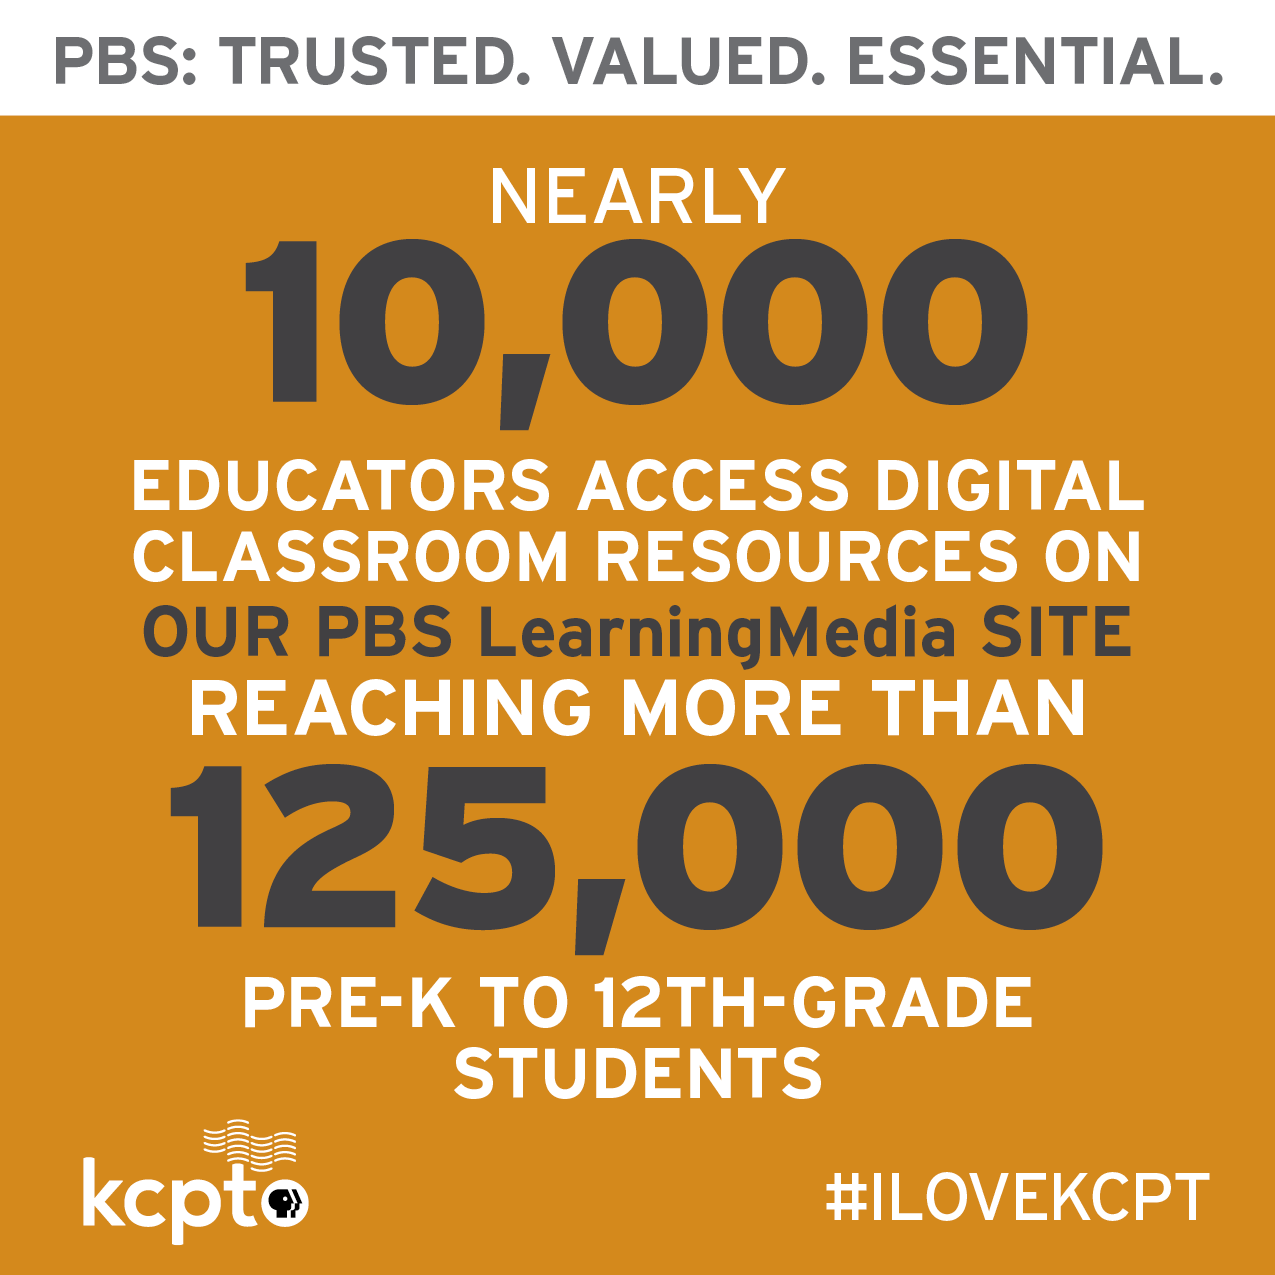 Nearly ten thousand educators access the PBS LearningMedia SITE, reaching more than 125,000 Pre-K to twelth grade students.